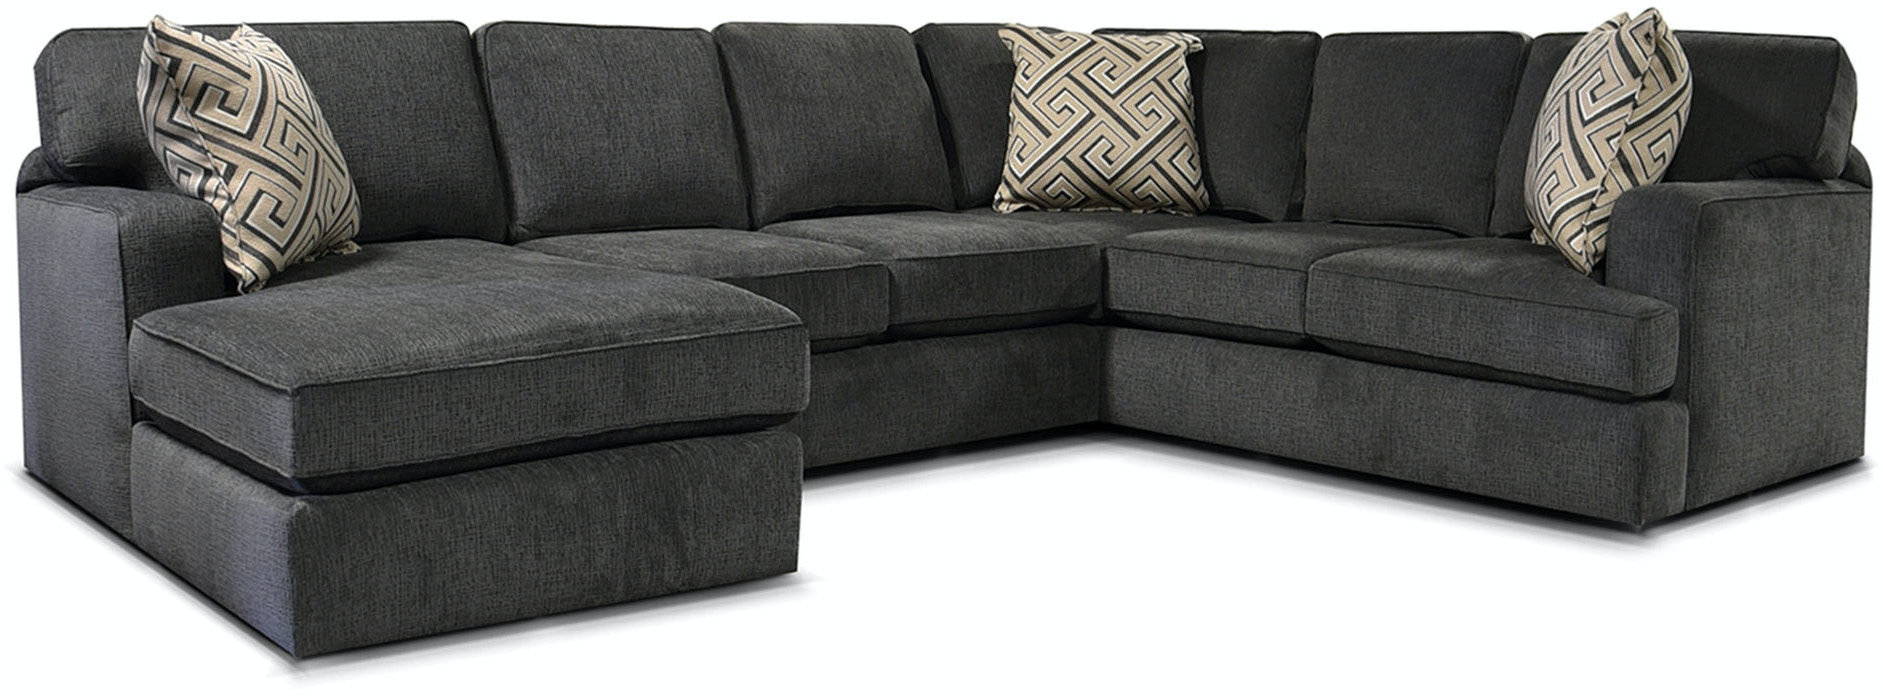 England Living Room Rouse Sectional 4r00 Sect Seaside